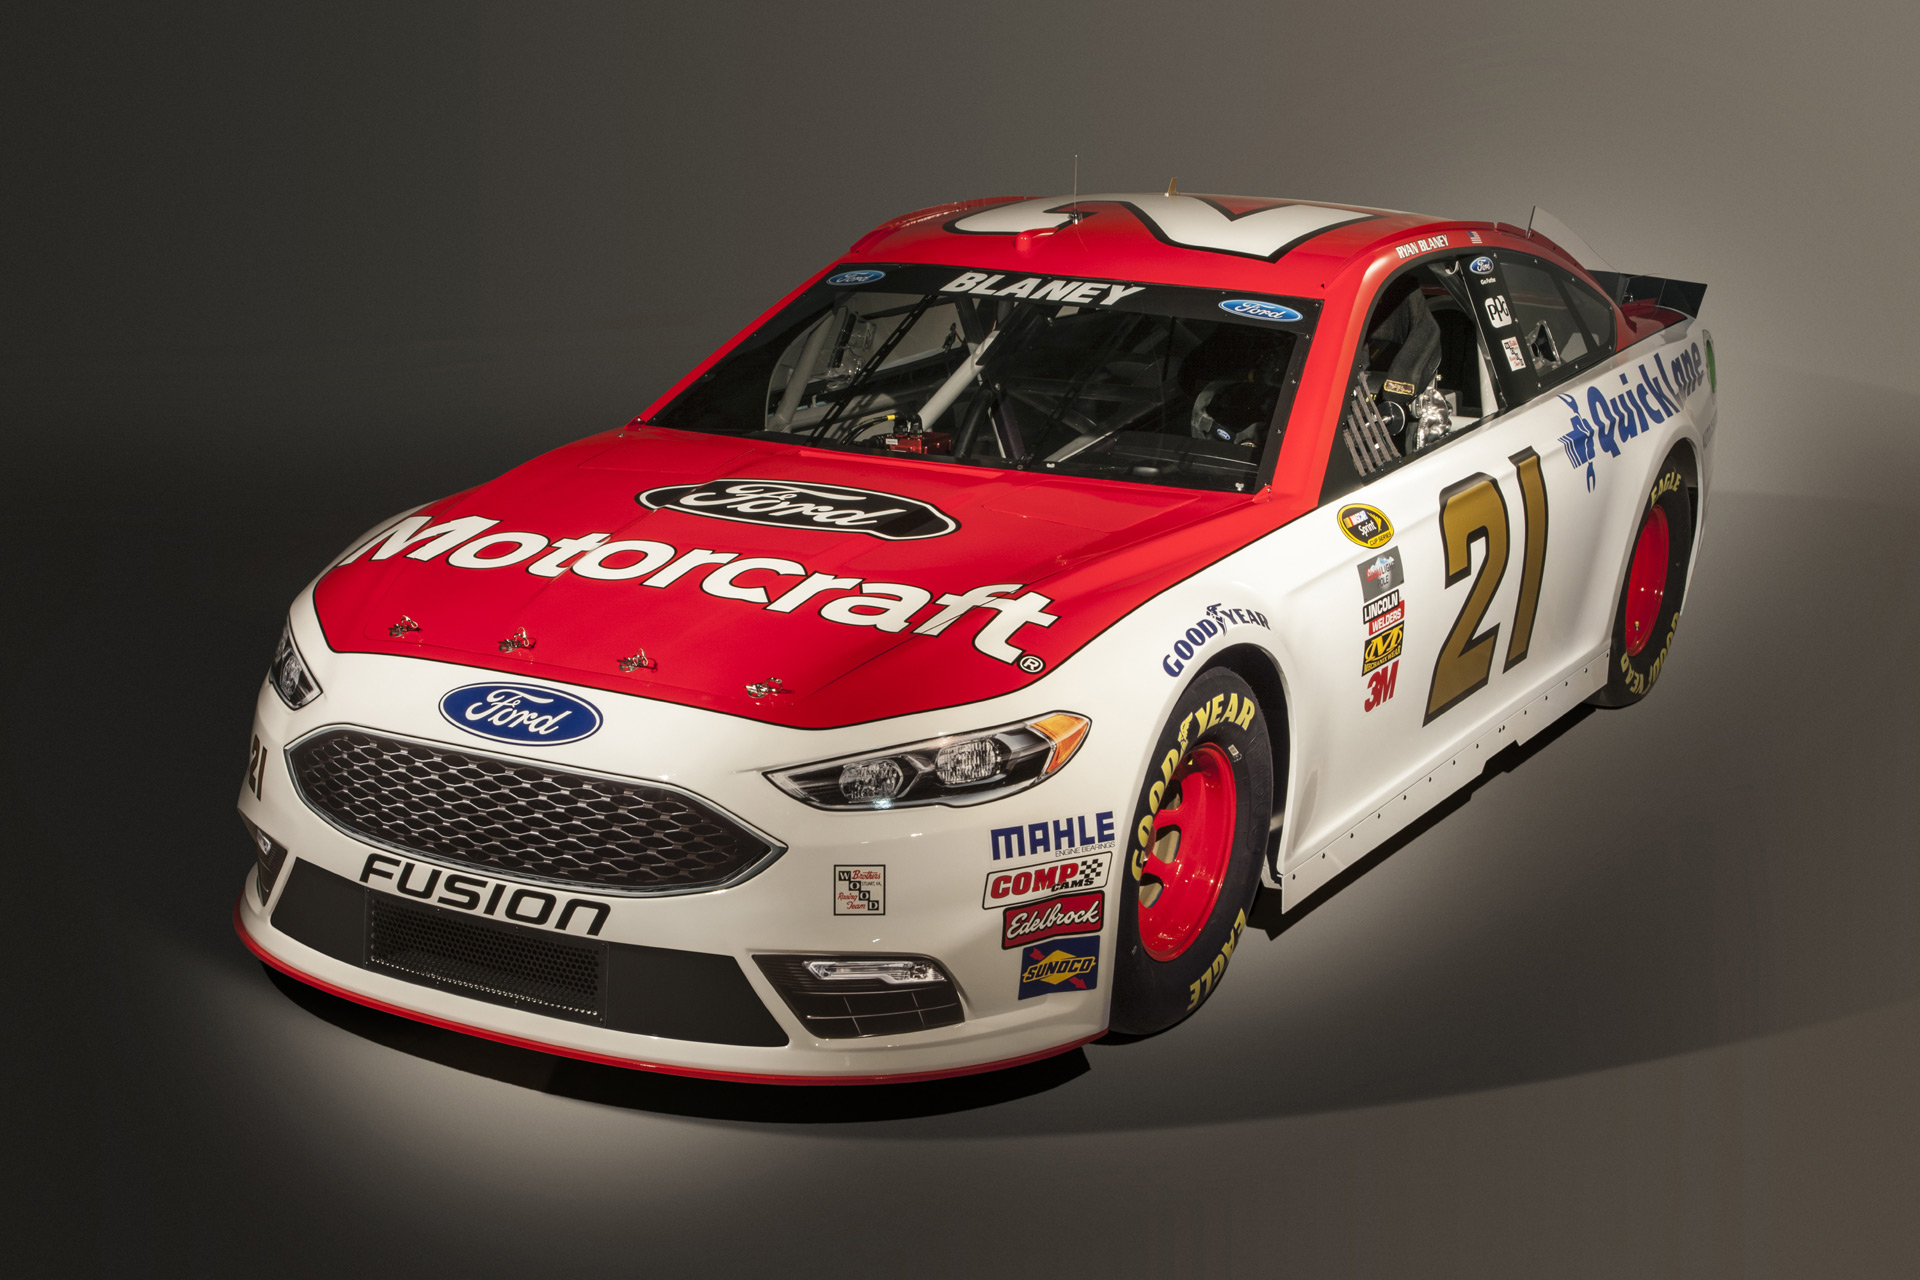 2016 Ford Fusion NASCAR Sprint Cup Racer Adopts New Look